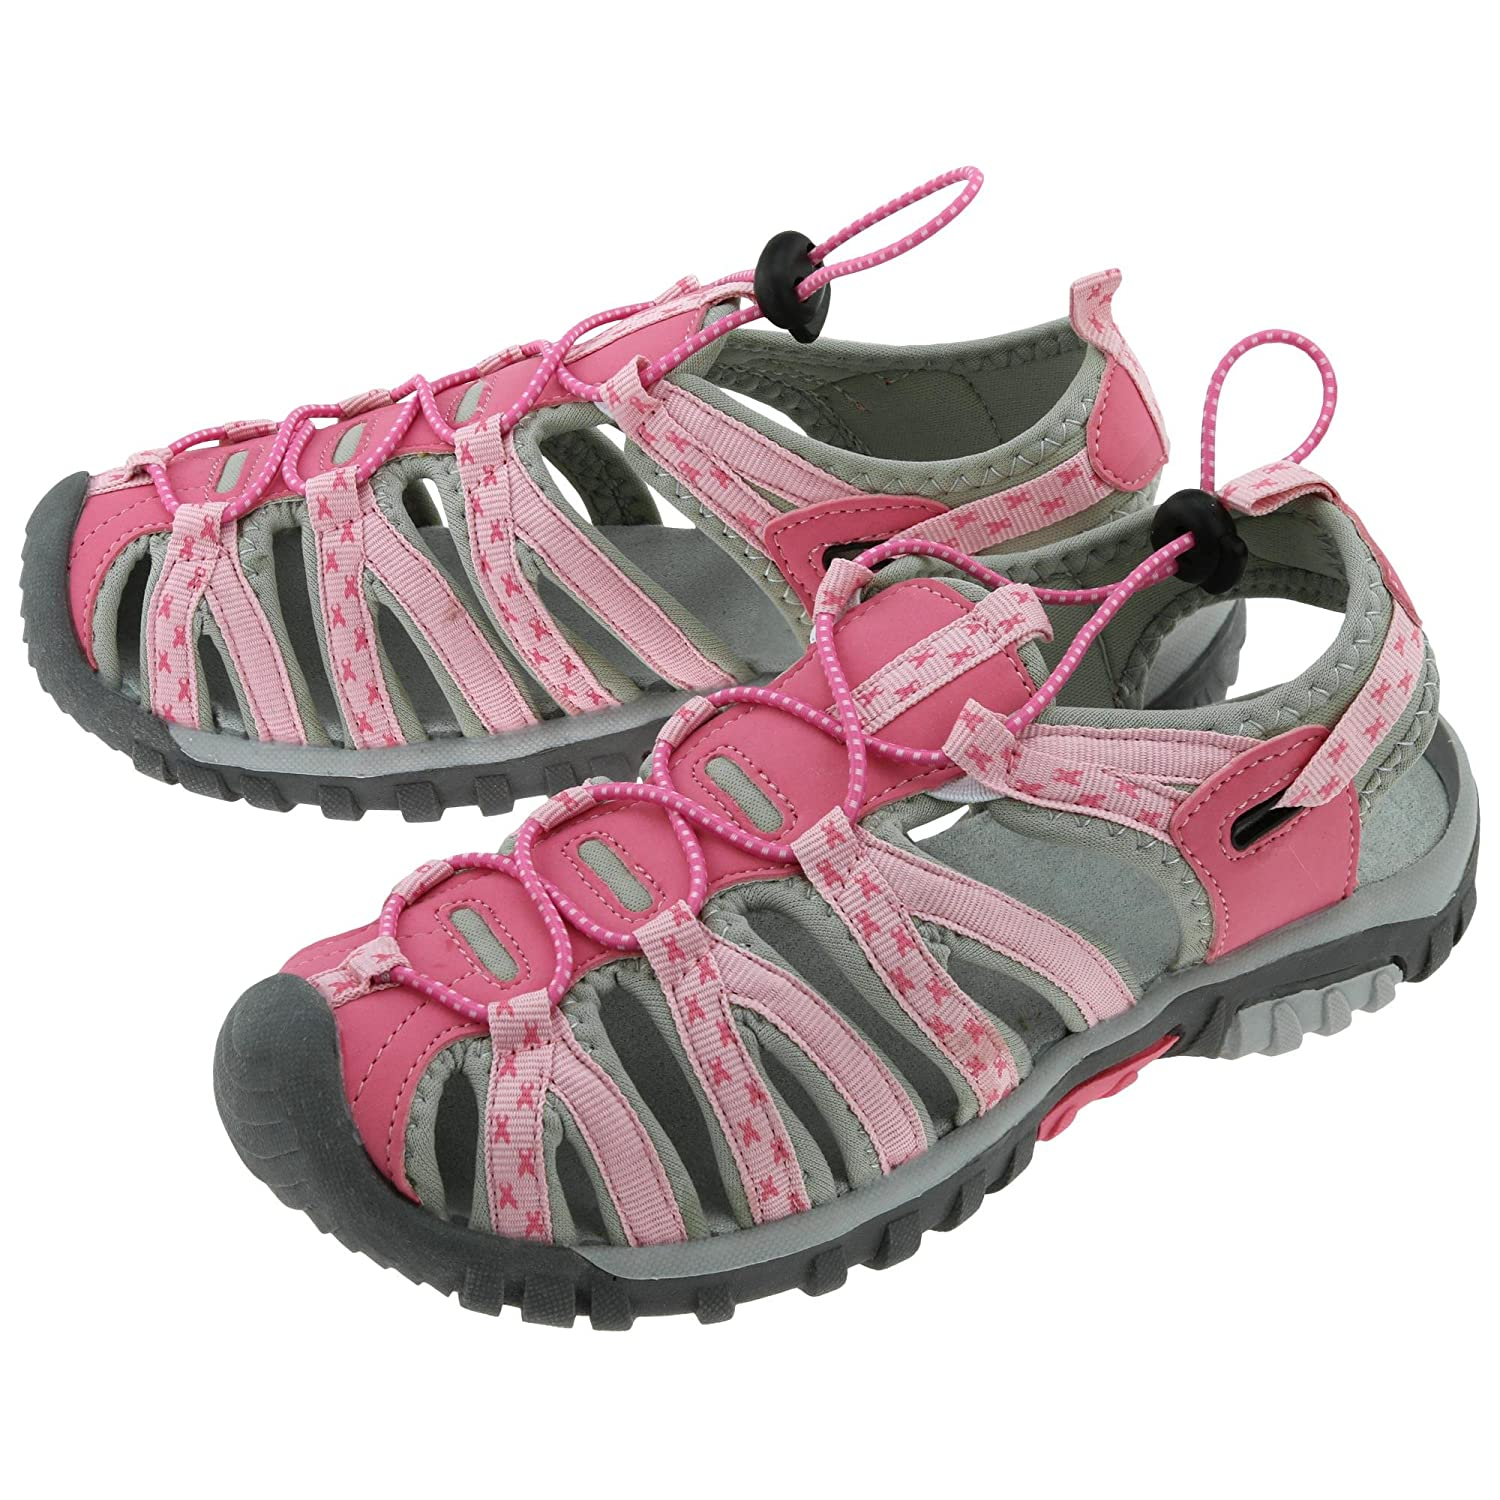 GreaterGood Path to Pink Sport Sandals B06XY78XMT 10 B(M) US|Gray/Pink